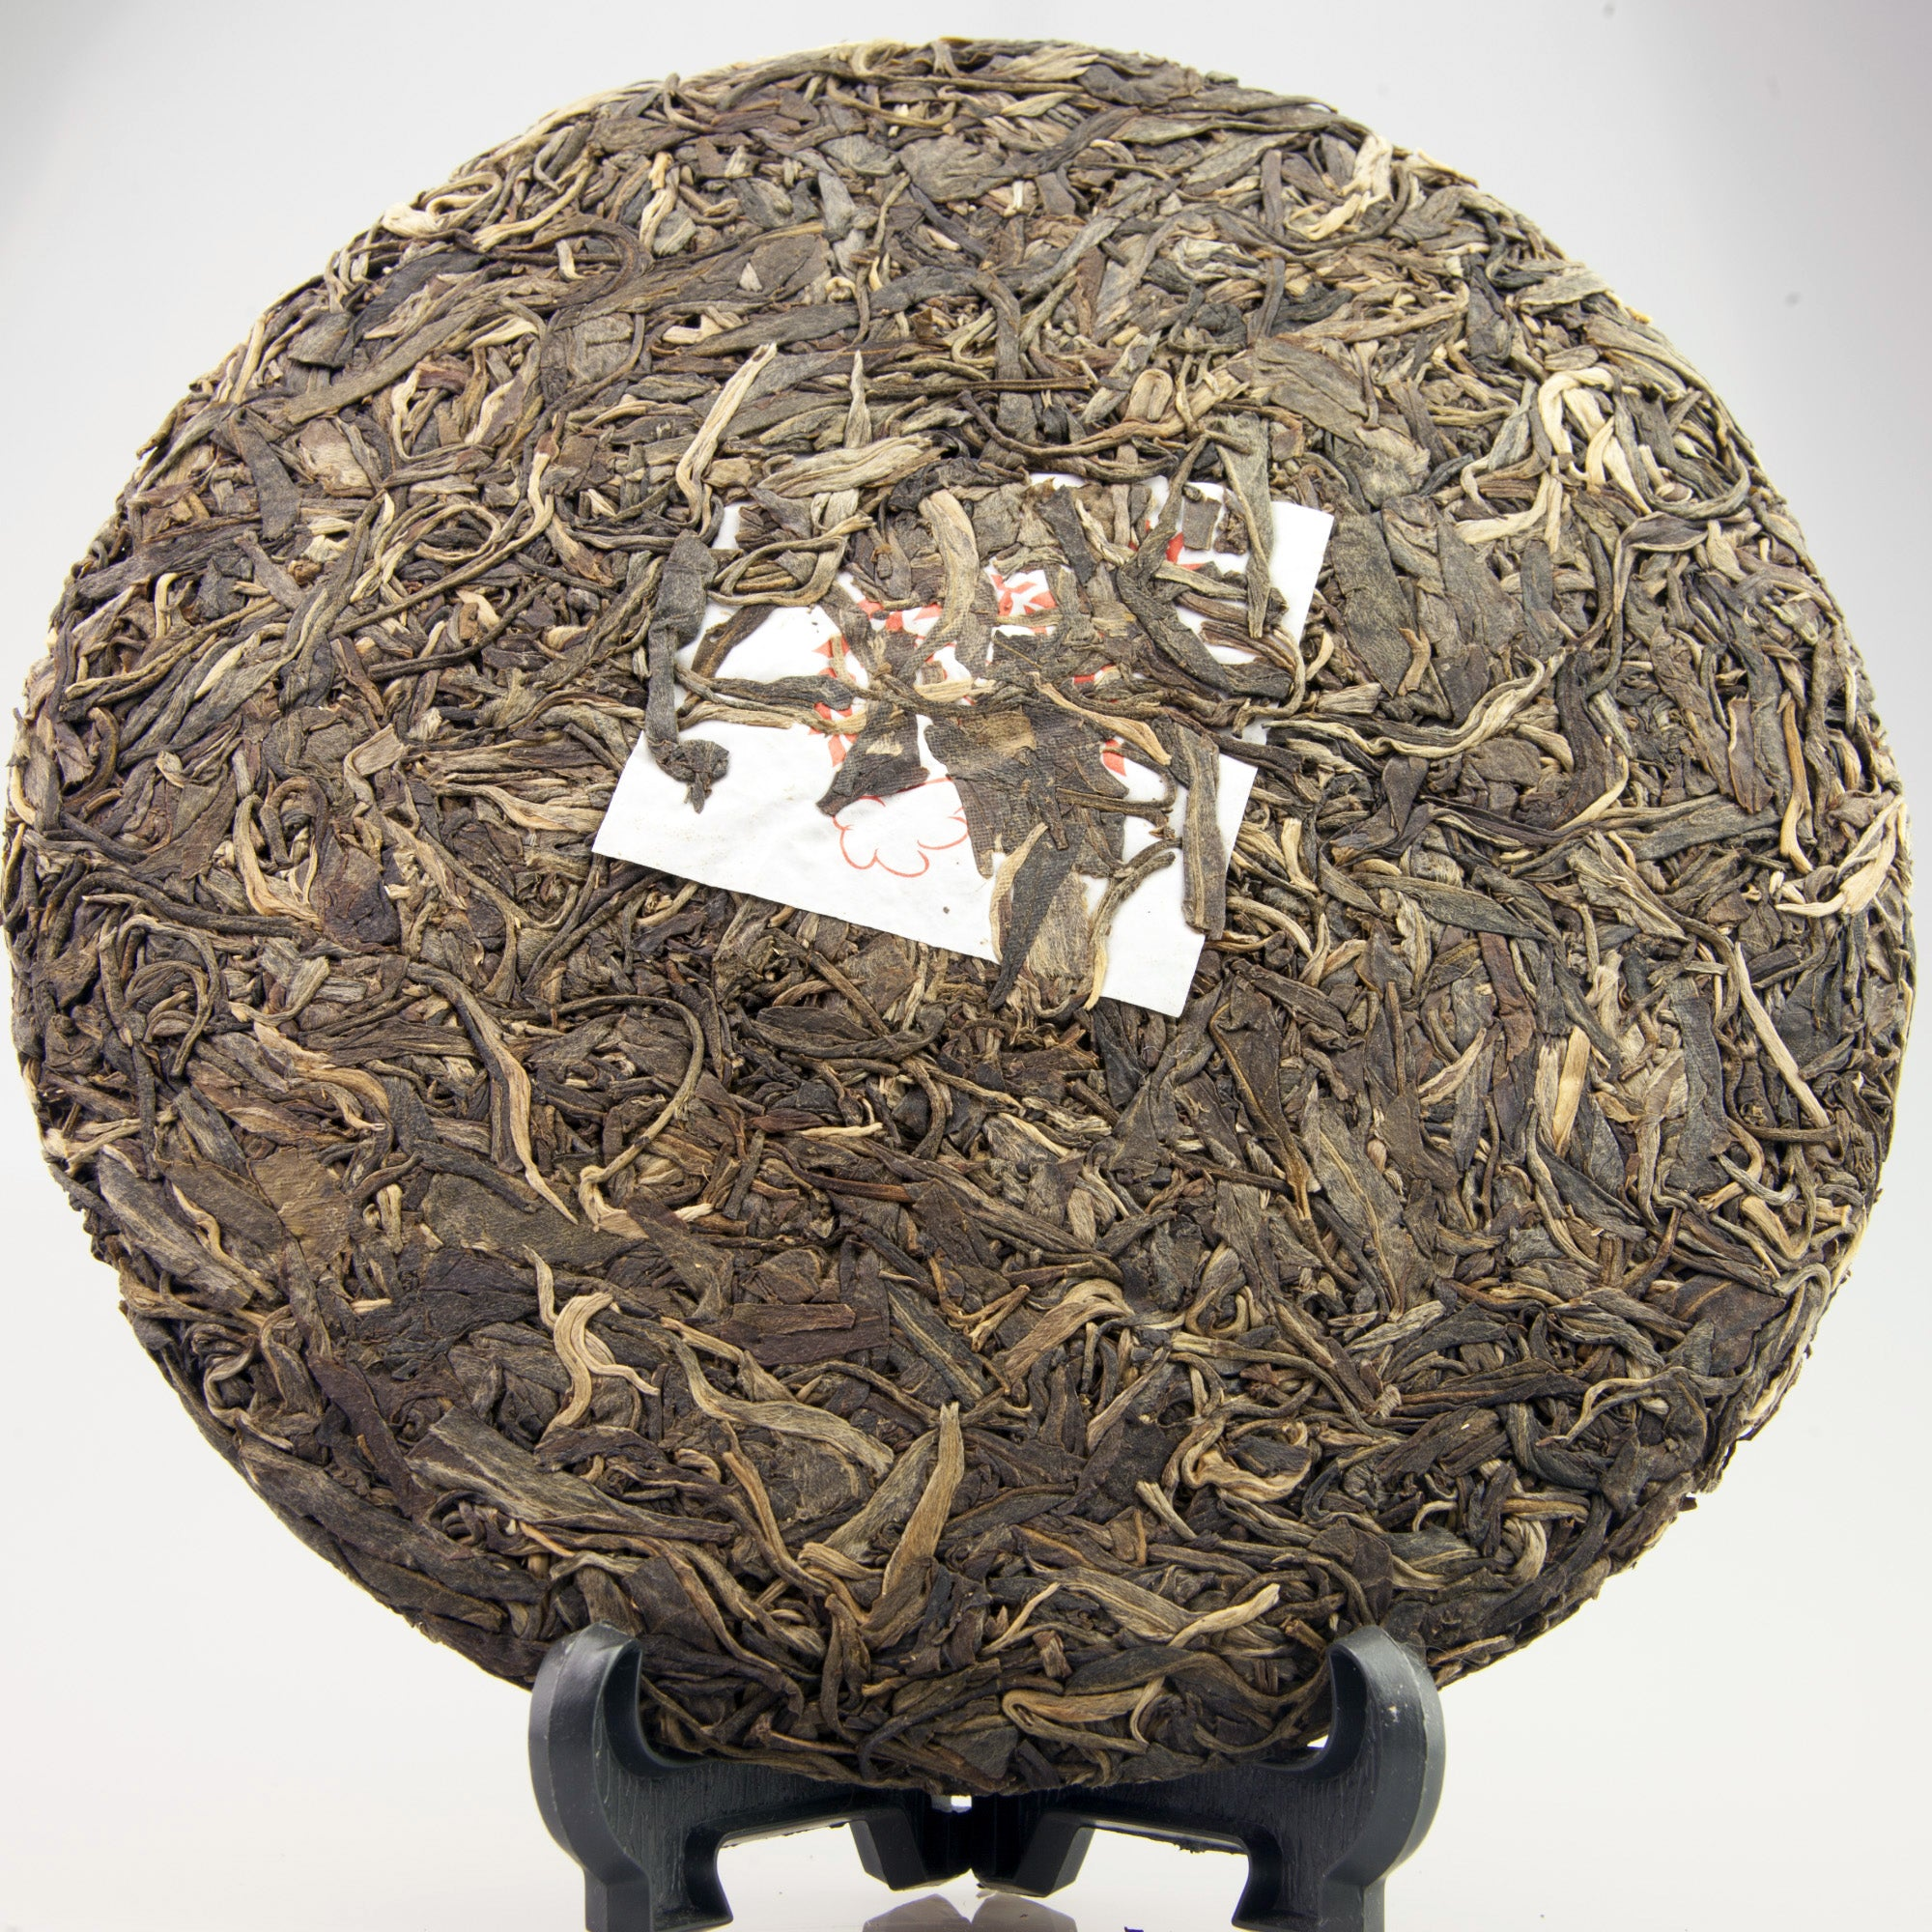 2013 Bulang Mountain Raw Puer